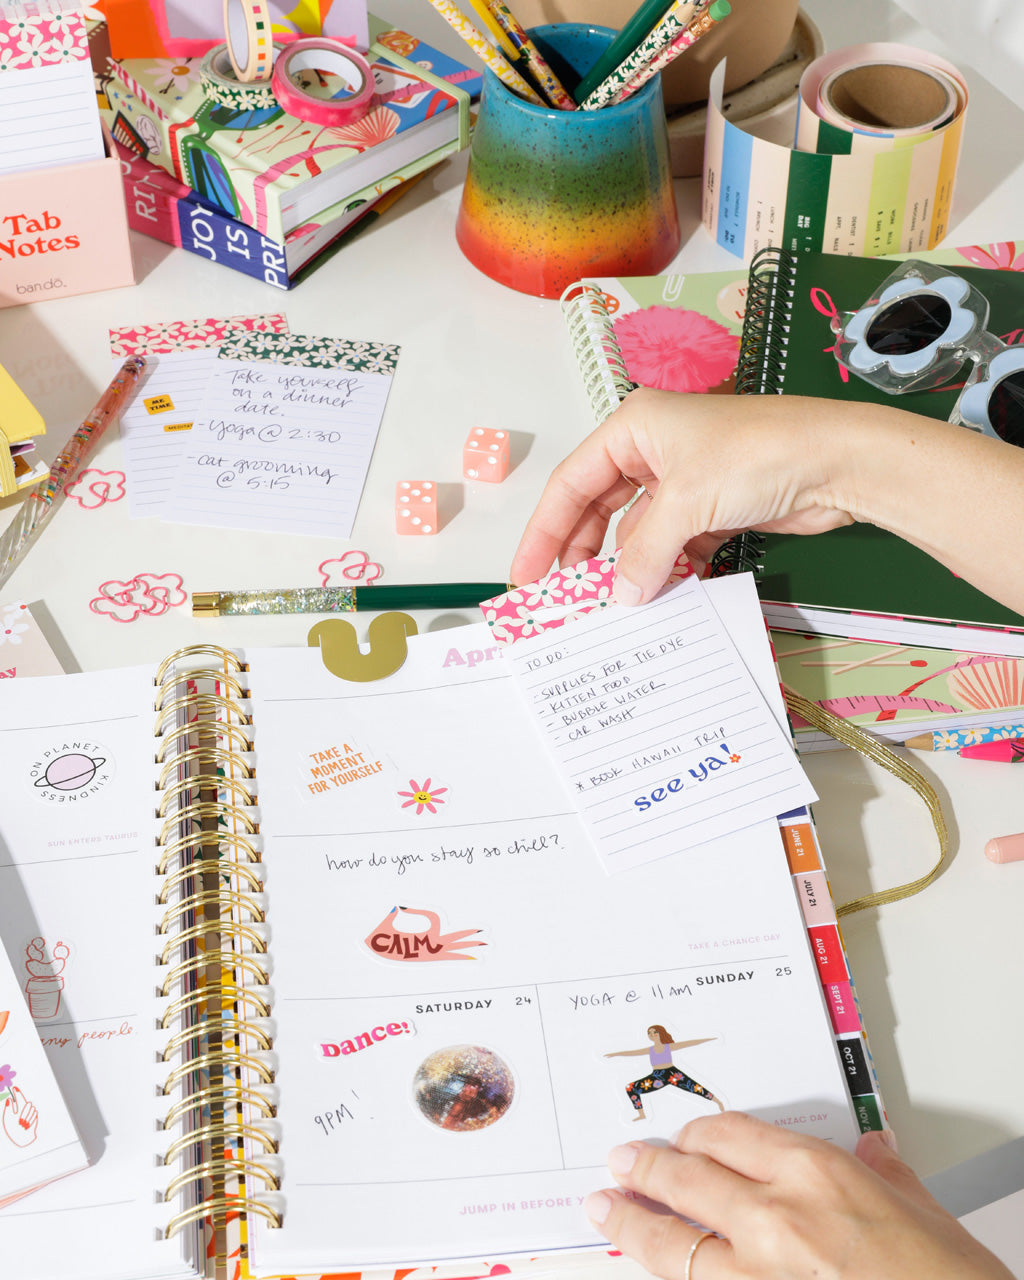 lifestyle image of tab notes being used in a bando planner, other bando products shown as well